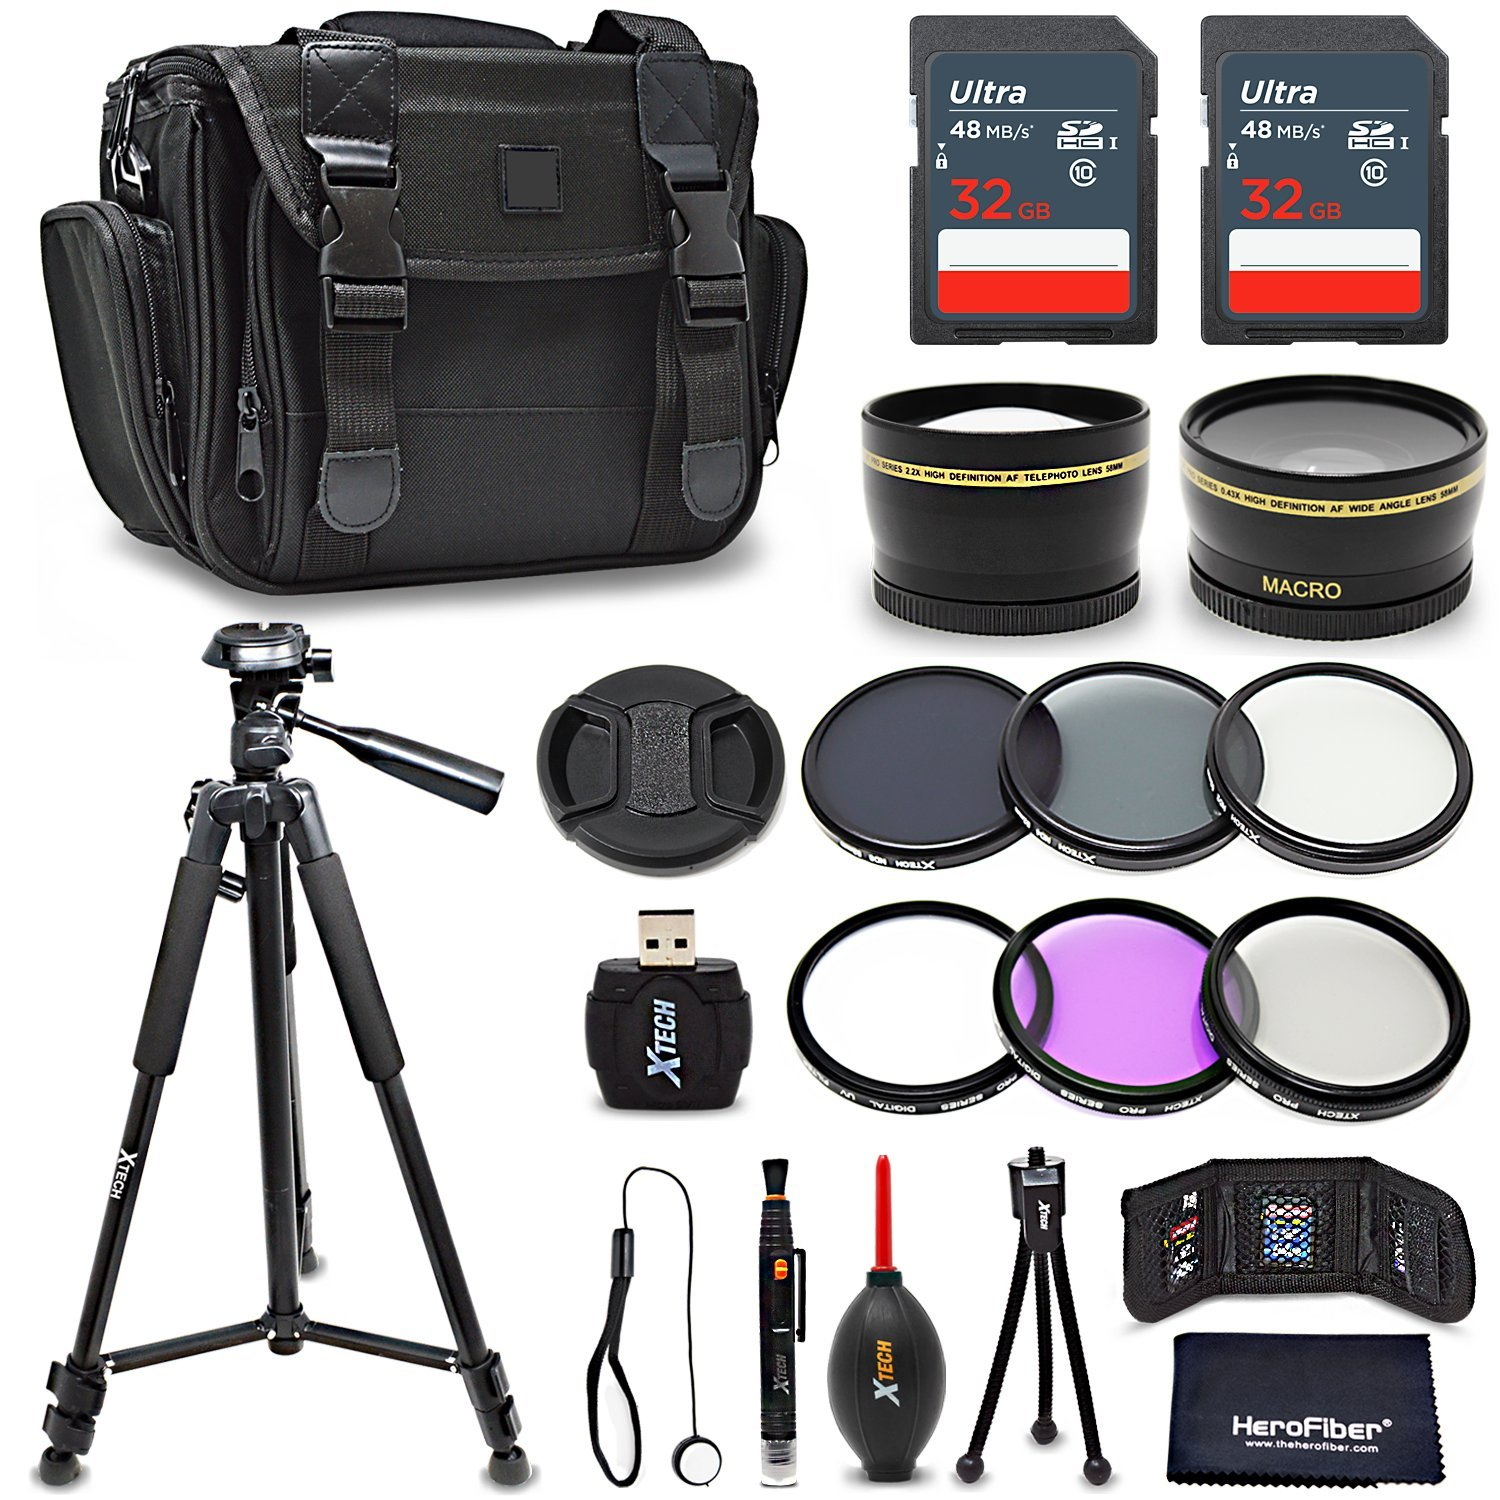 Premium 52mm Accessories Bundle Kit for DSLR Cameras - Includes 64GB Memory Card, 52mm 2x Telephoto Lens, 52mm Wide Angle Lens, Premium Camera Case, 72 inch Tripod, 52mm ND Filters + More by HeroFiber